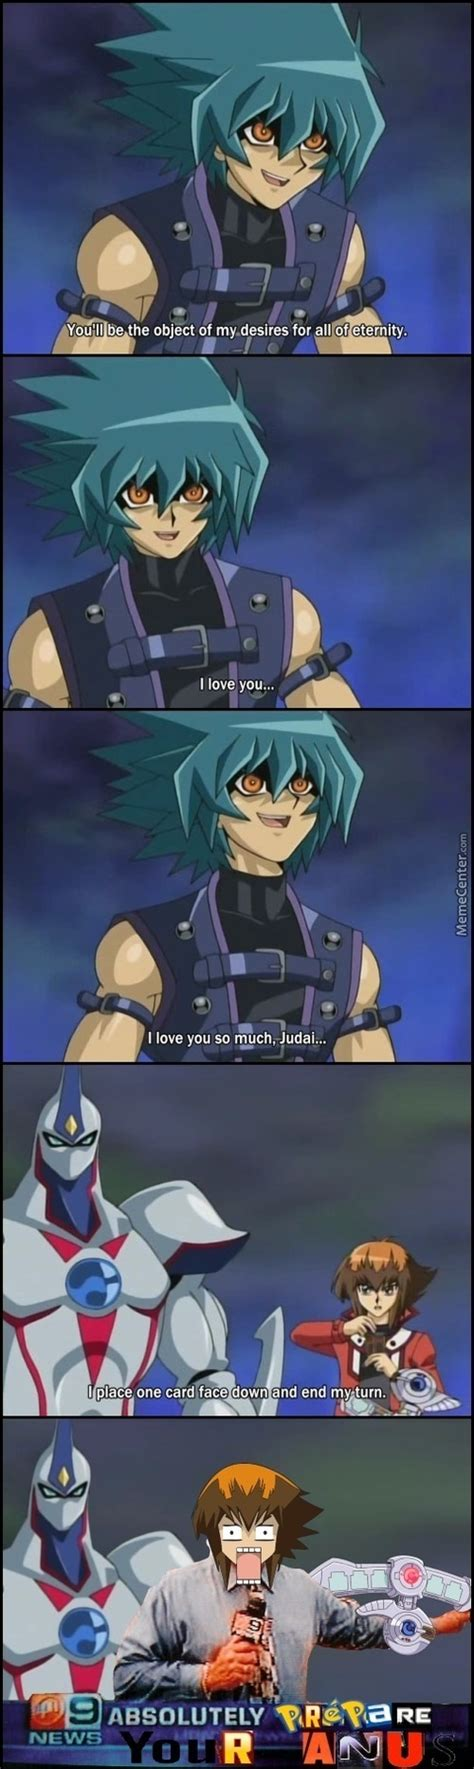 Yugioh Memes - yugioh memes best collection of funny yugioh pictures